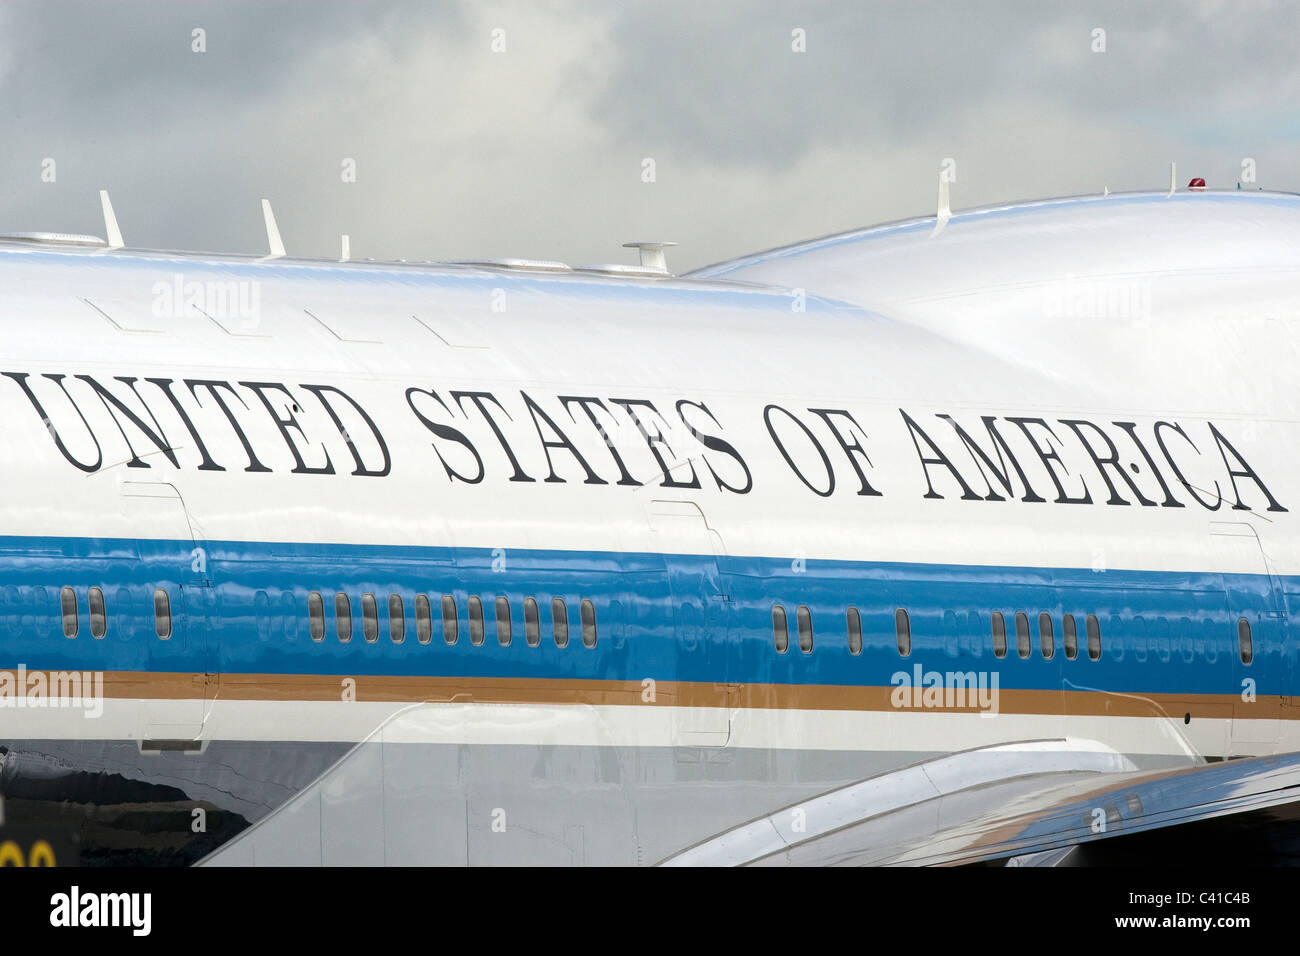 Detail on US President Obama's official Boeing 747 Jumbo Jet with words United States of America - Stock Image